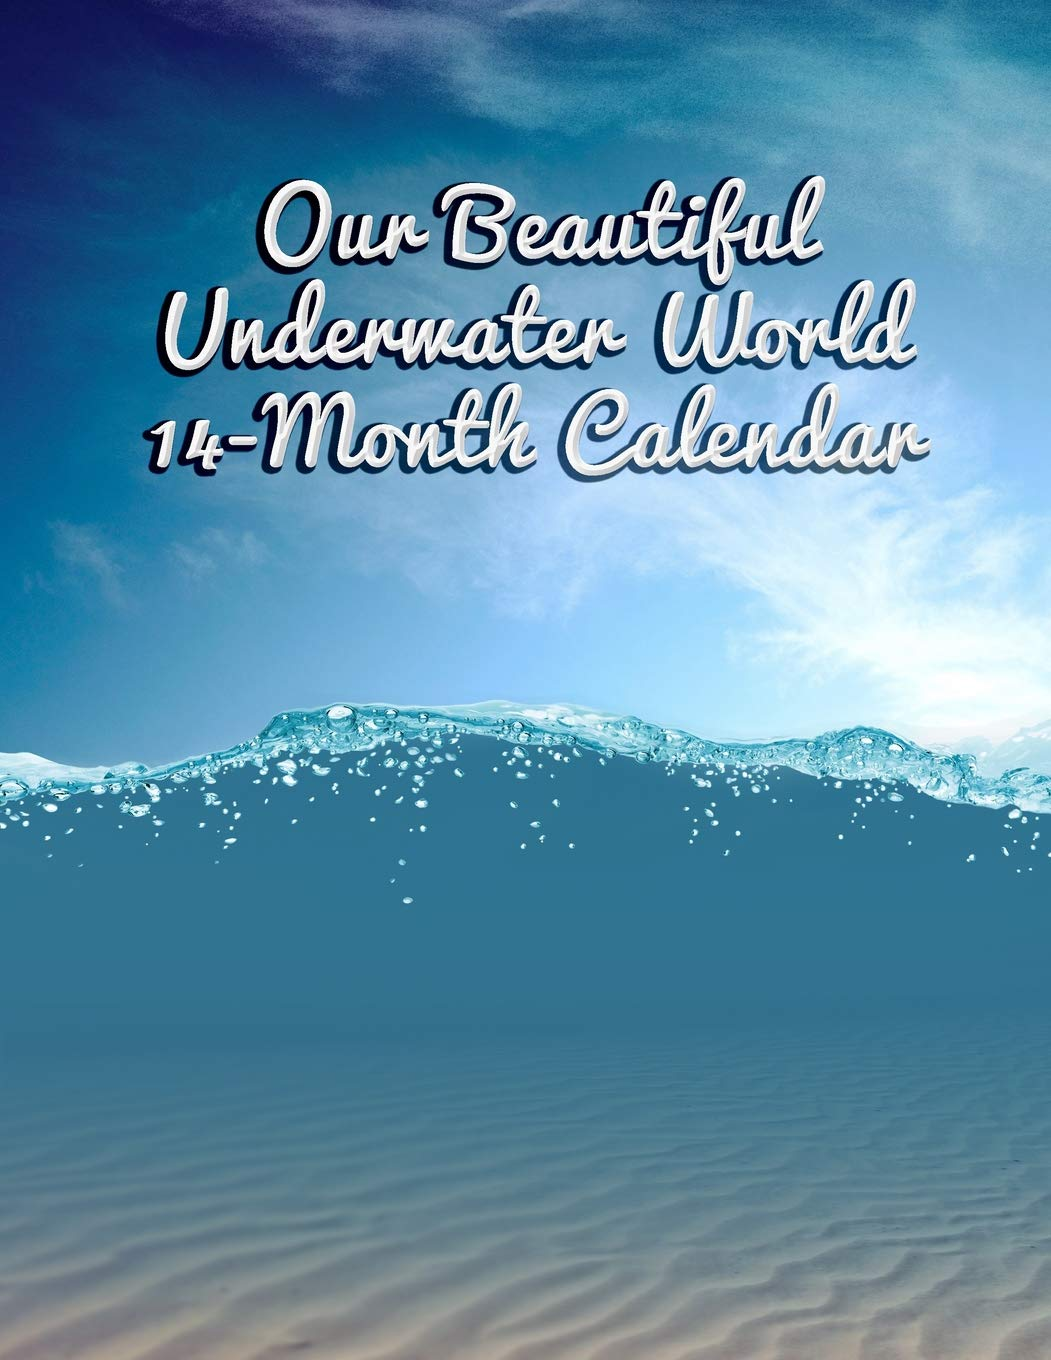 Book It Calendar February 2020 Amazon.com: Our Beautiful Underwater World 14 Month Calendar